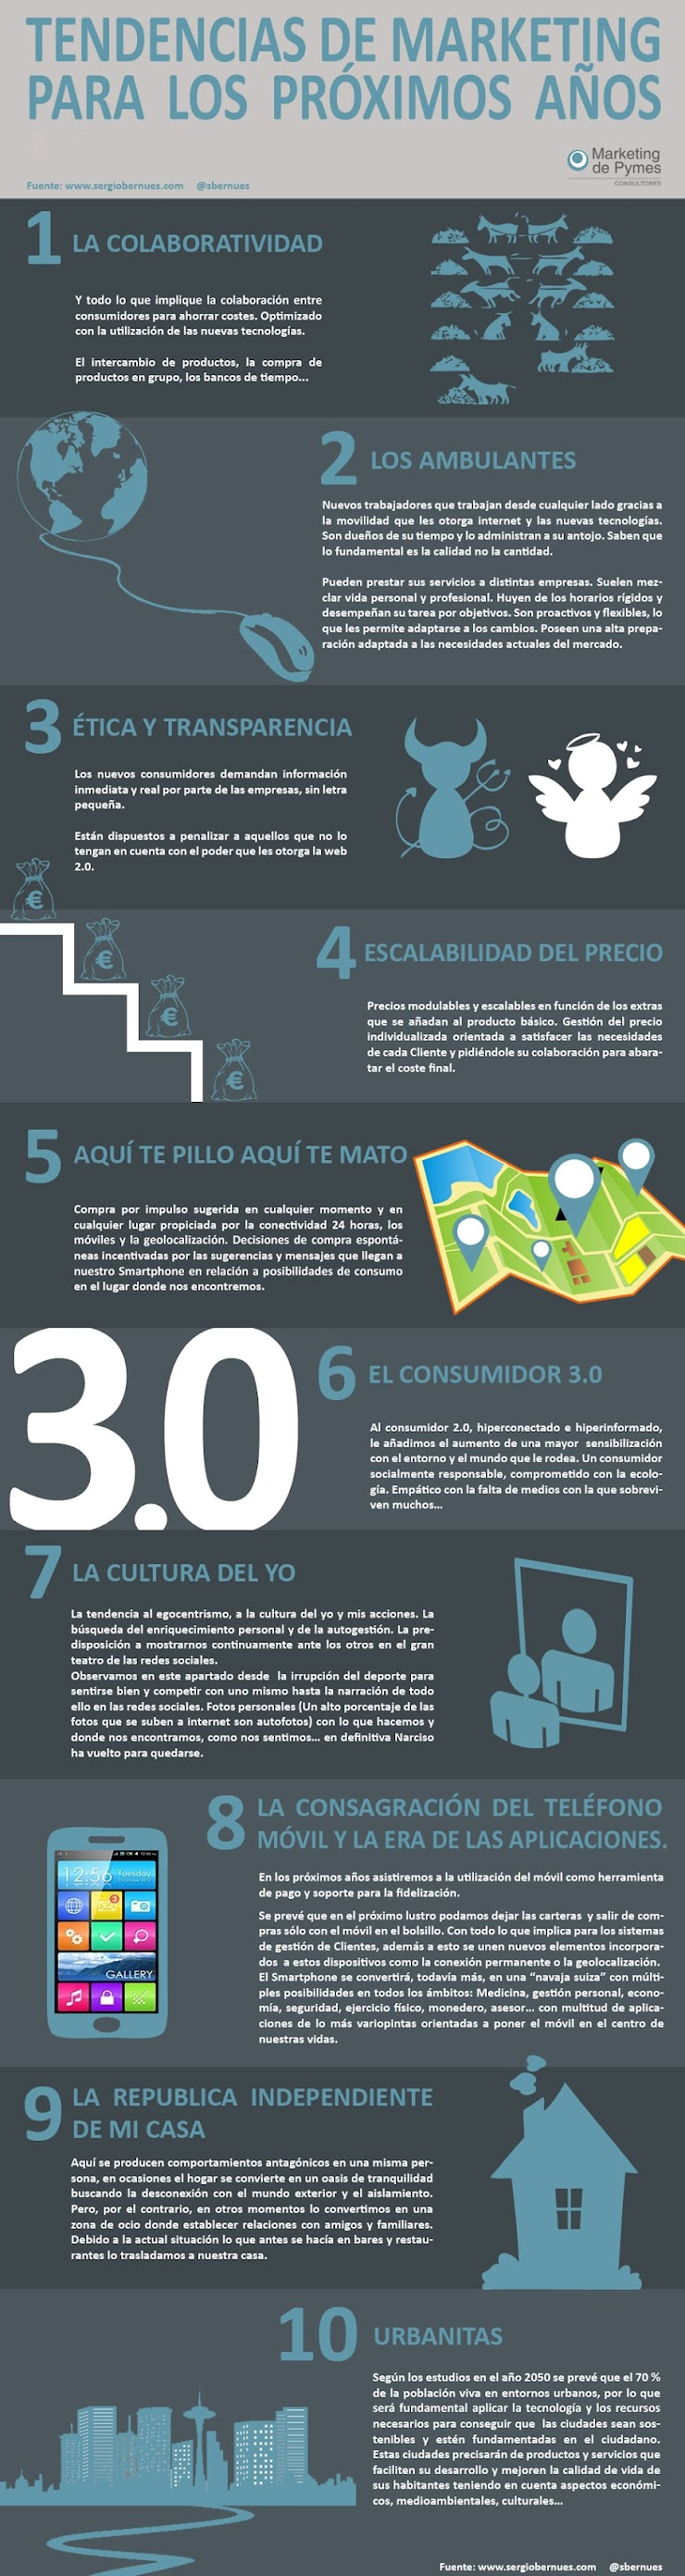 Tendencias de marketing